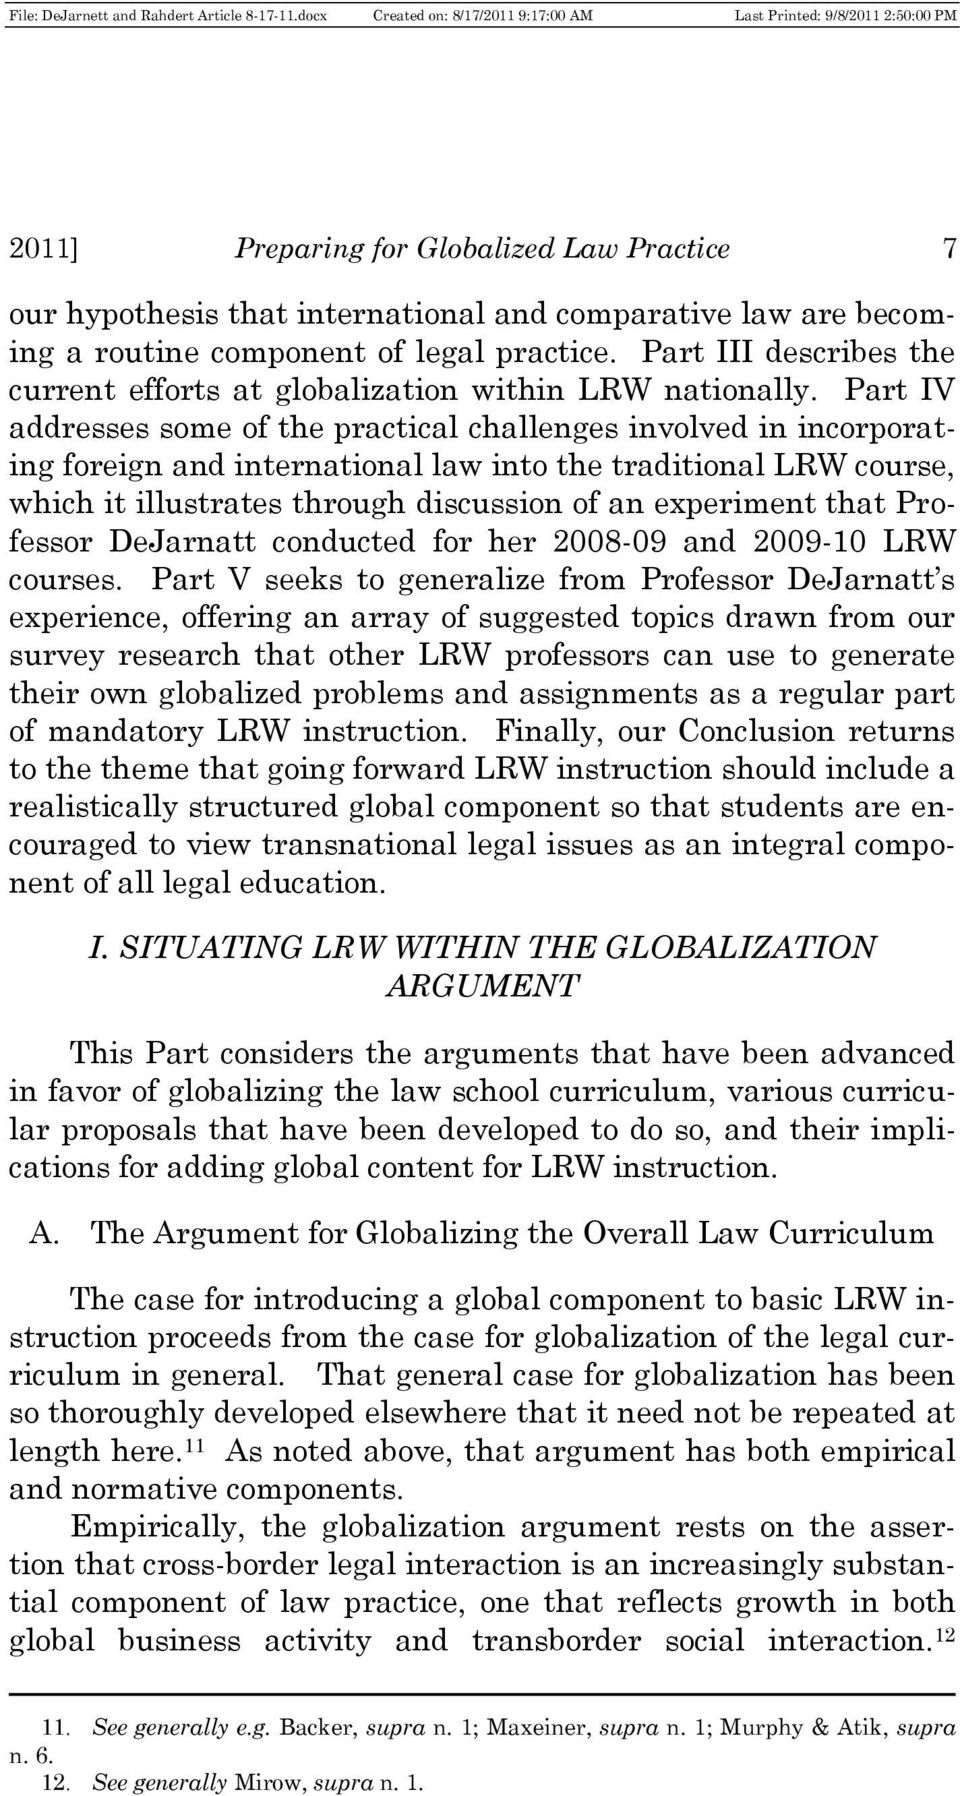 Part IV addresses some of the practical challenges involved in incorporating foreign and international law into the traditional LRW course, which it illustrates through discussion of an experiment